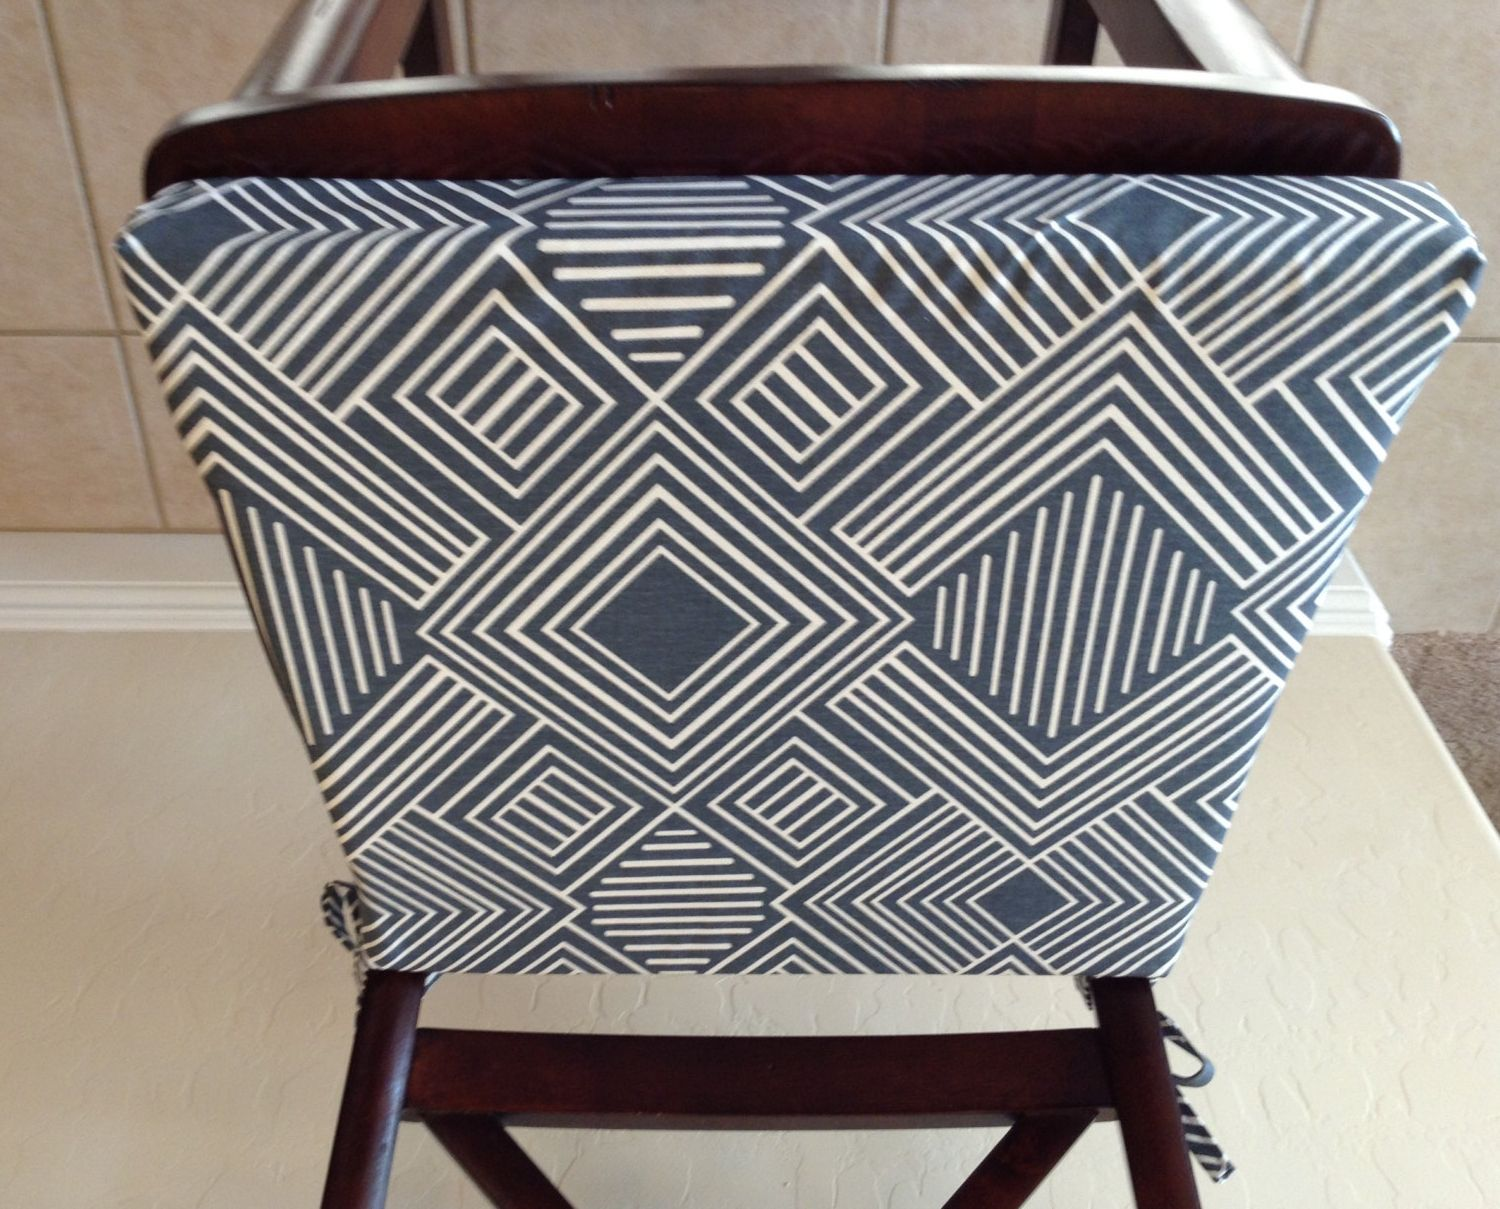 Geometric print seat cushion cover kitchen chair pad gunmetal bluegray on cream cotton fabric counter bar stool seat pad cover washable